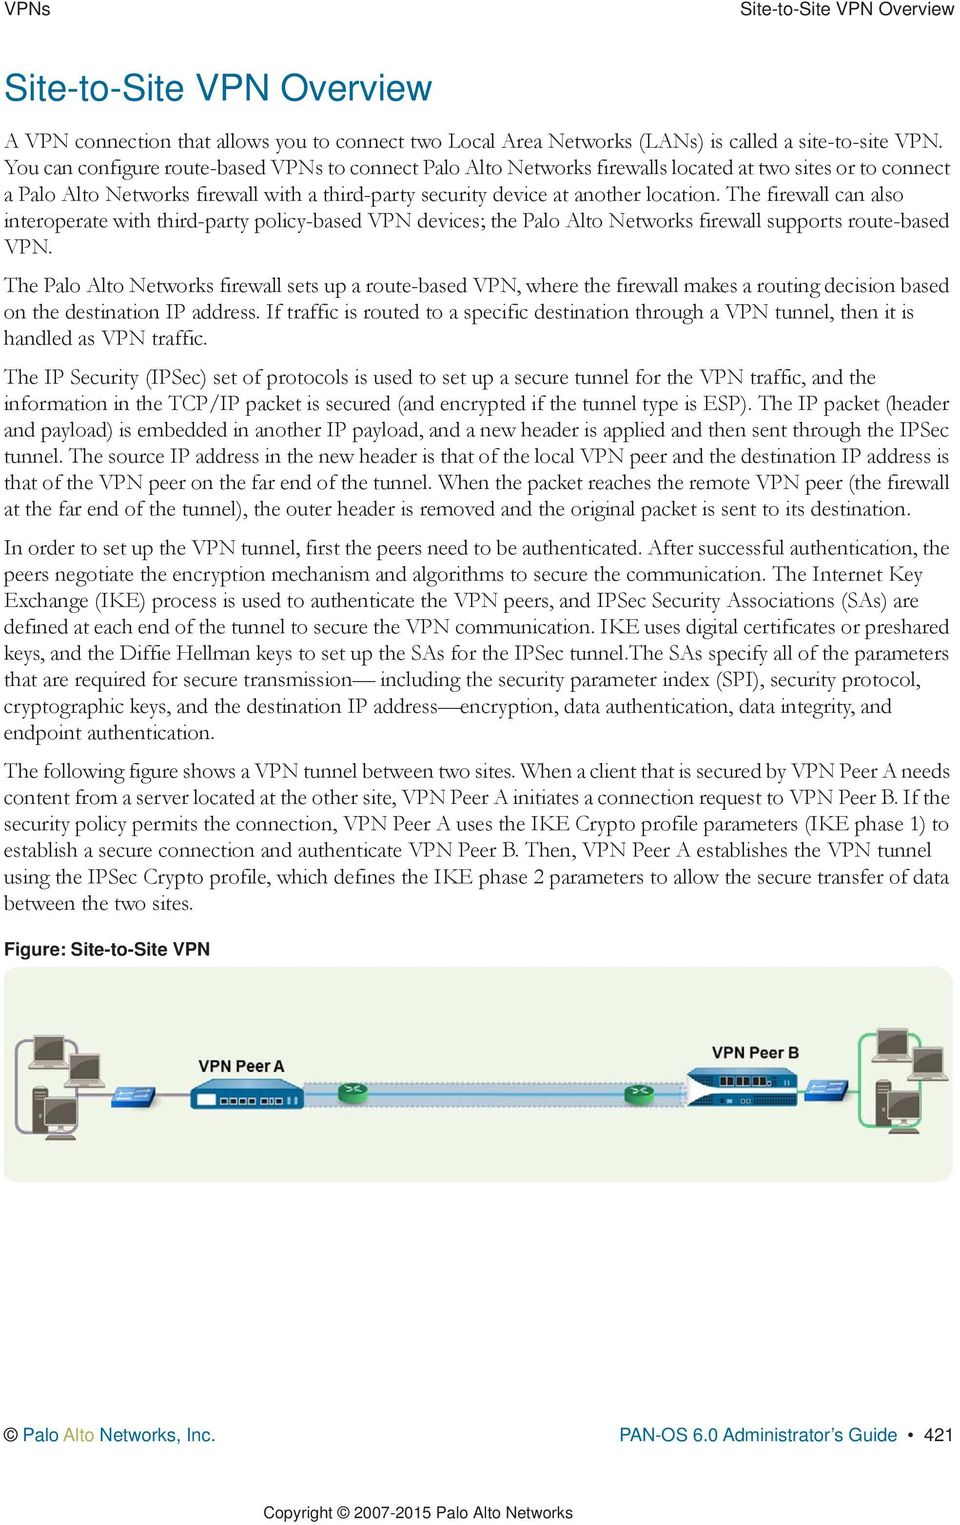 VPNs  Palo Alto Networks  PAN-OS Administrator s Guide Version 6 0